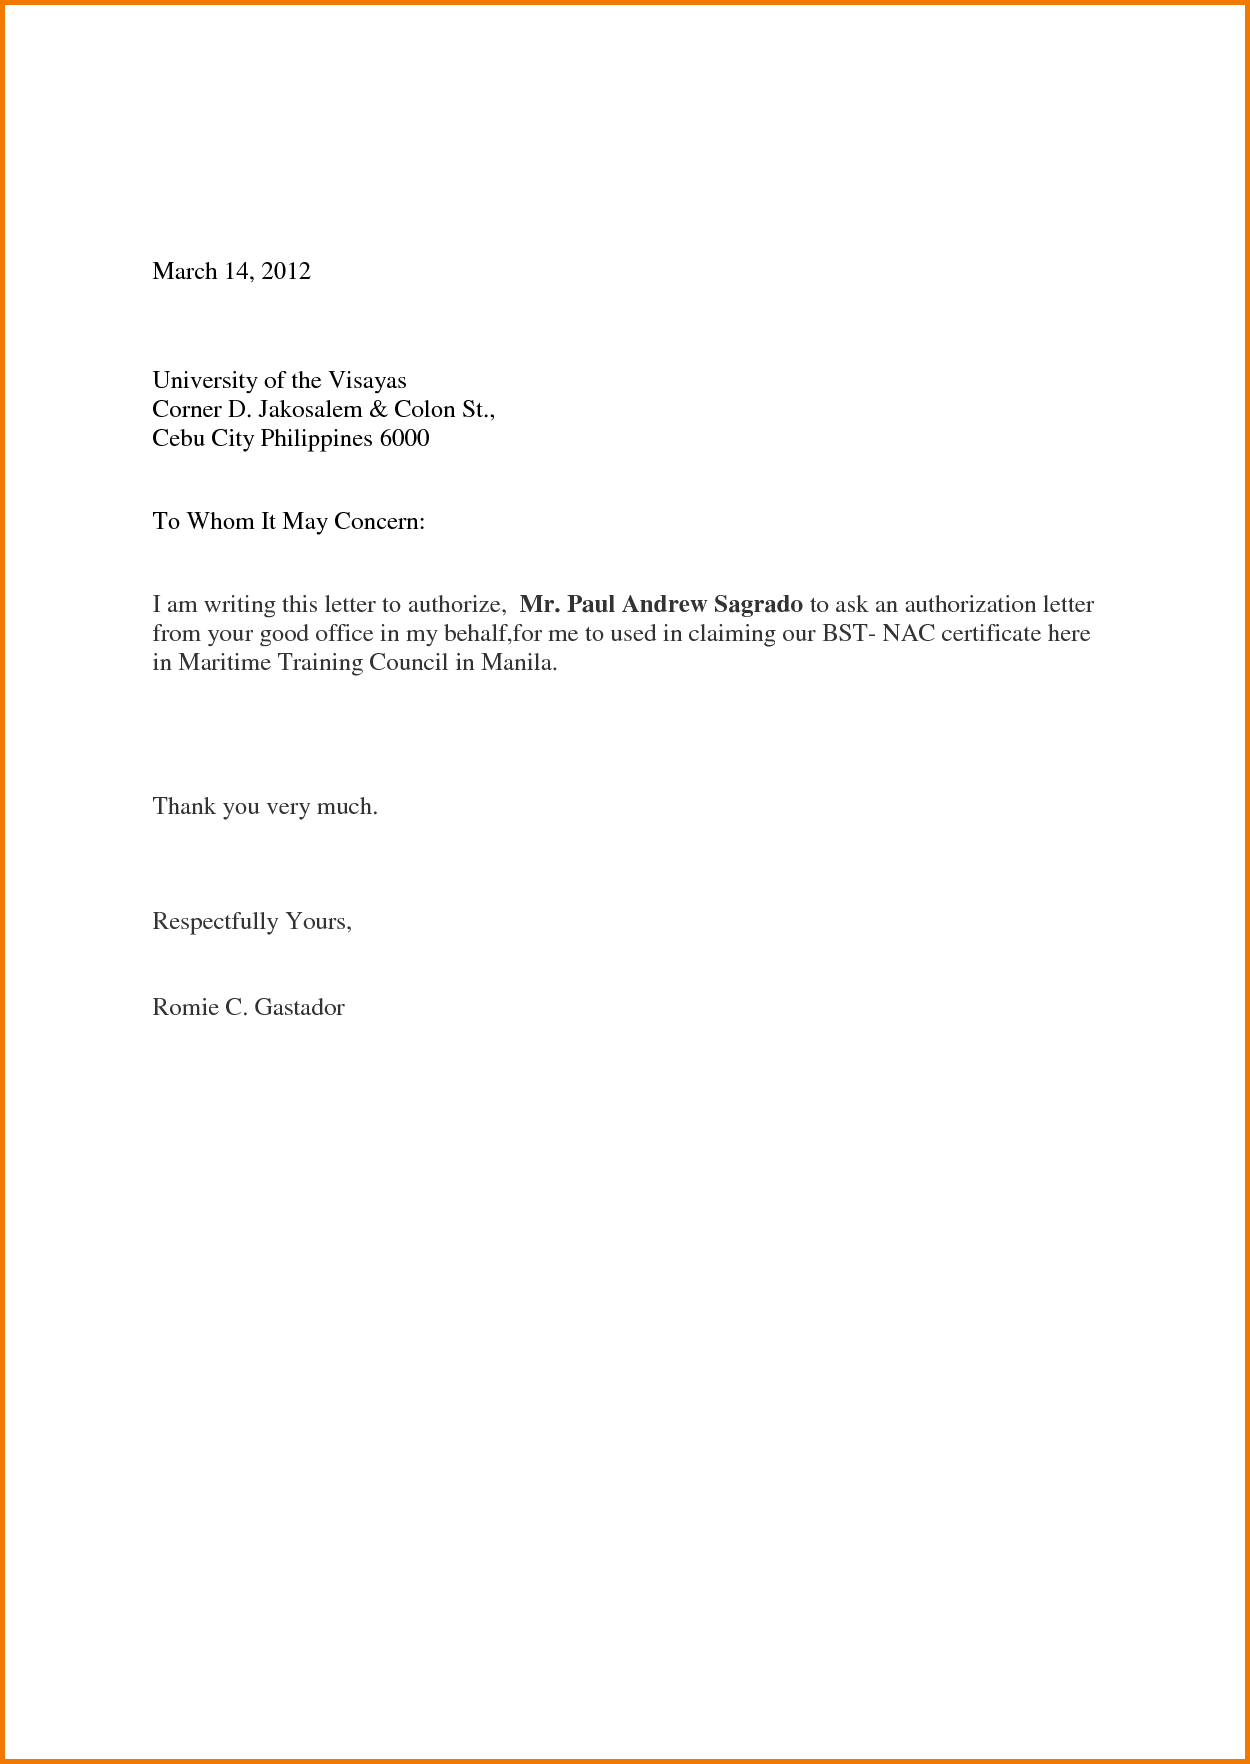 Authorization Letter Sample To Act on Behalf